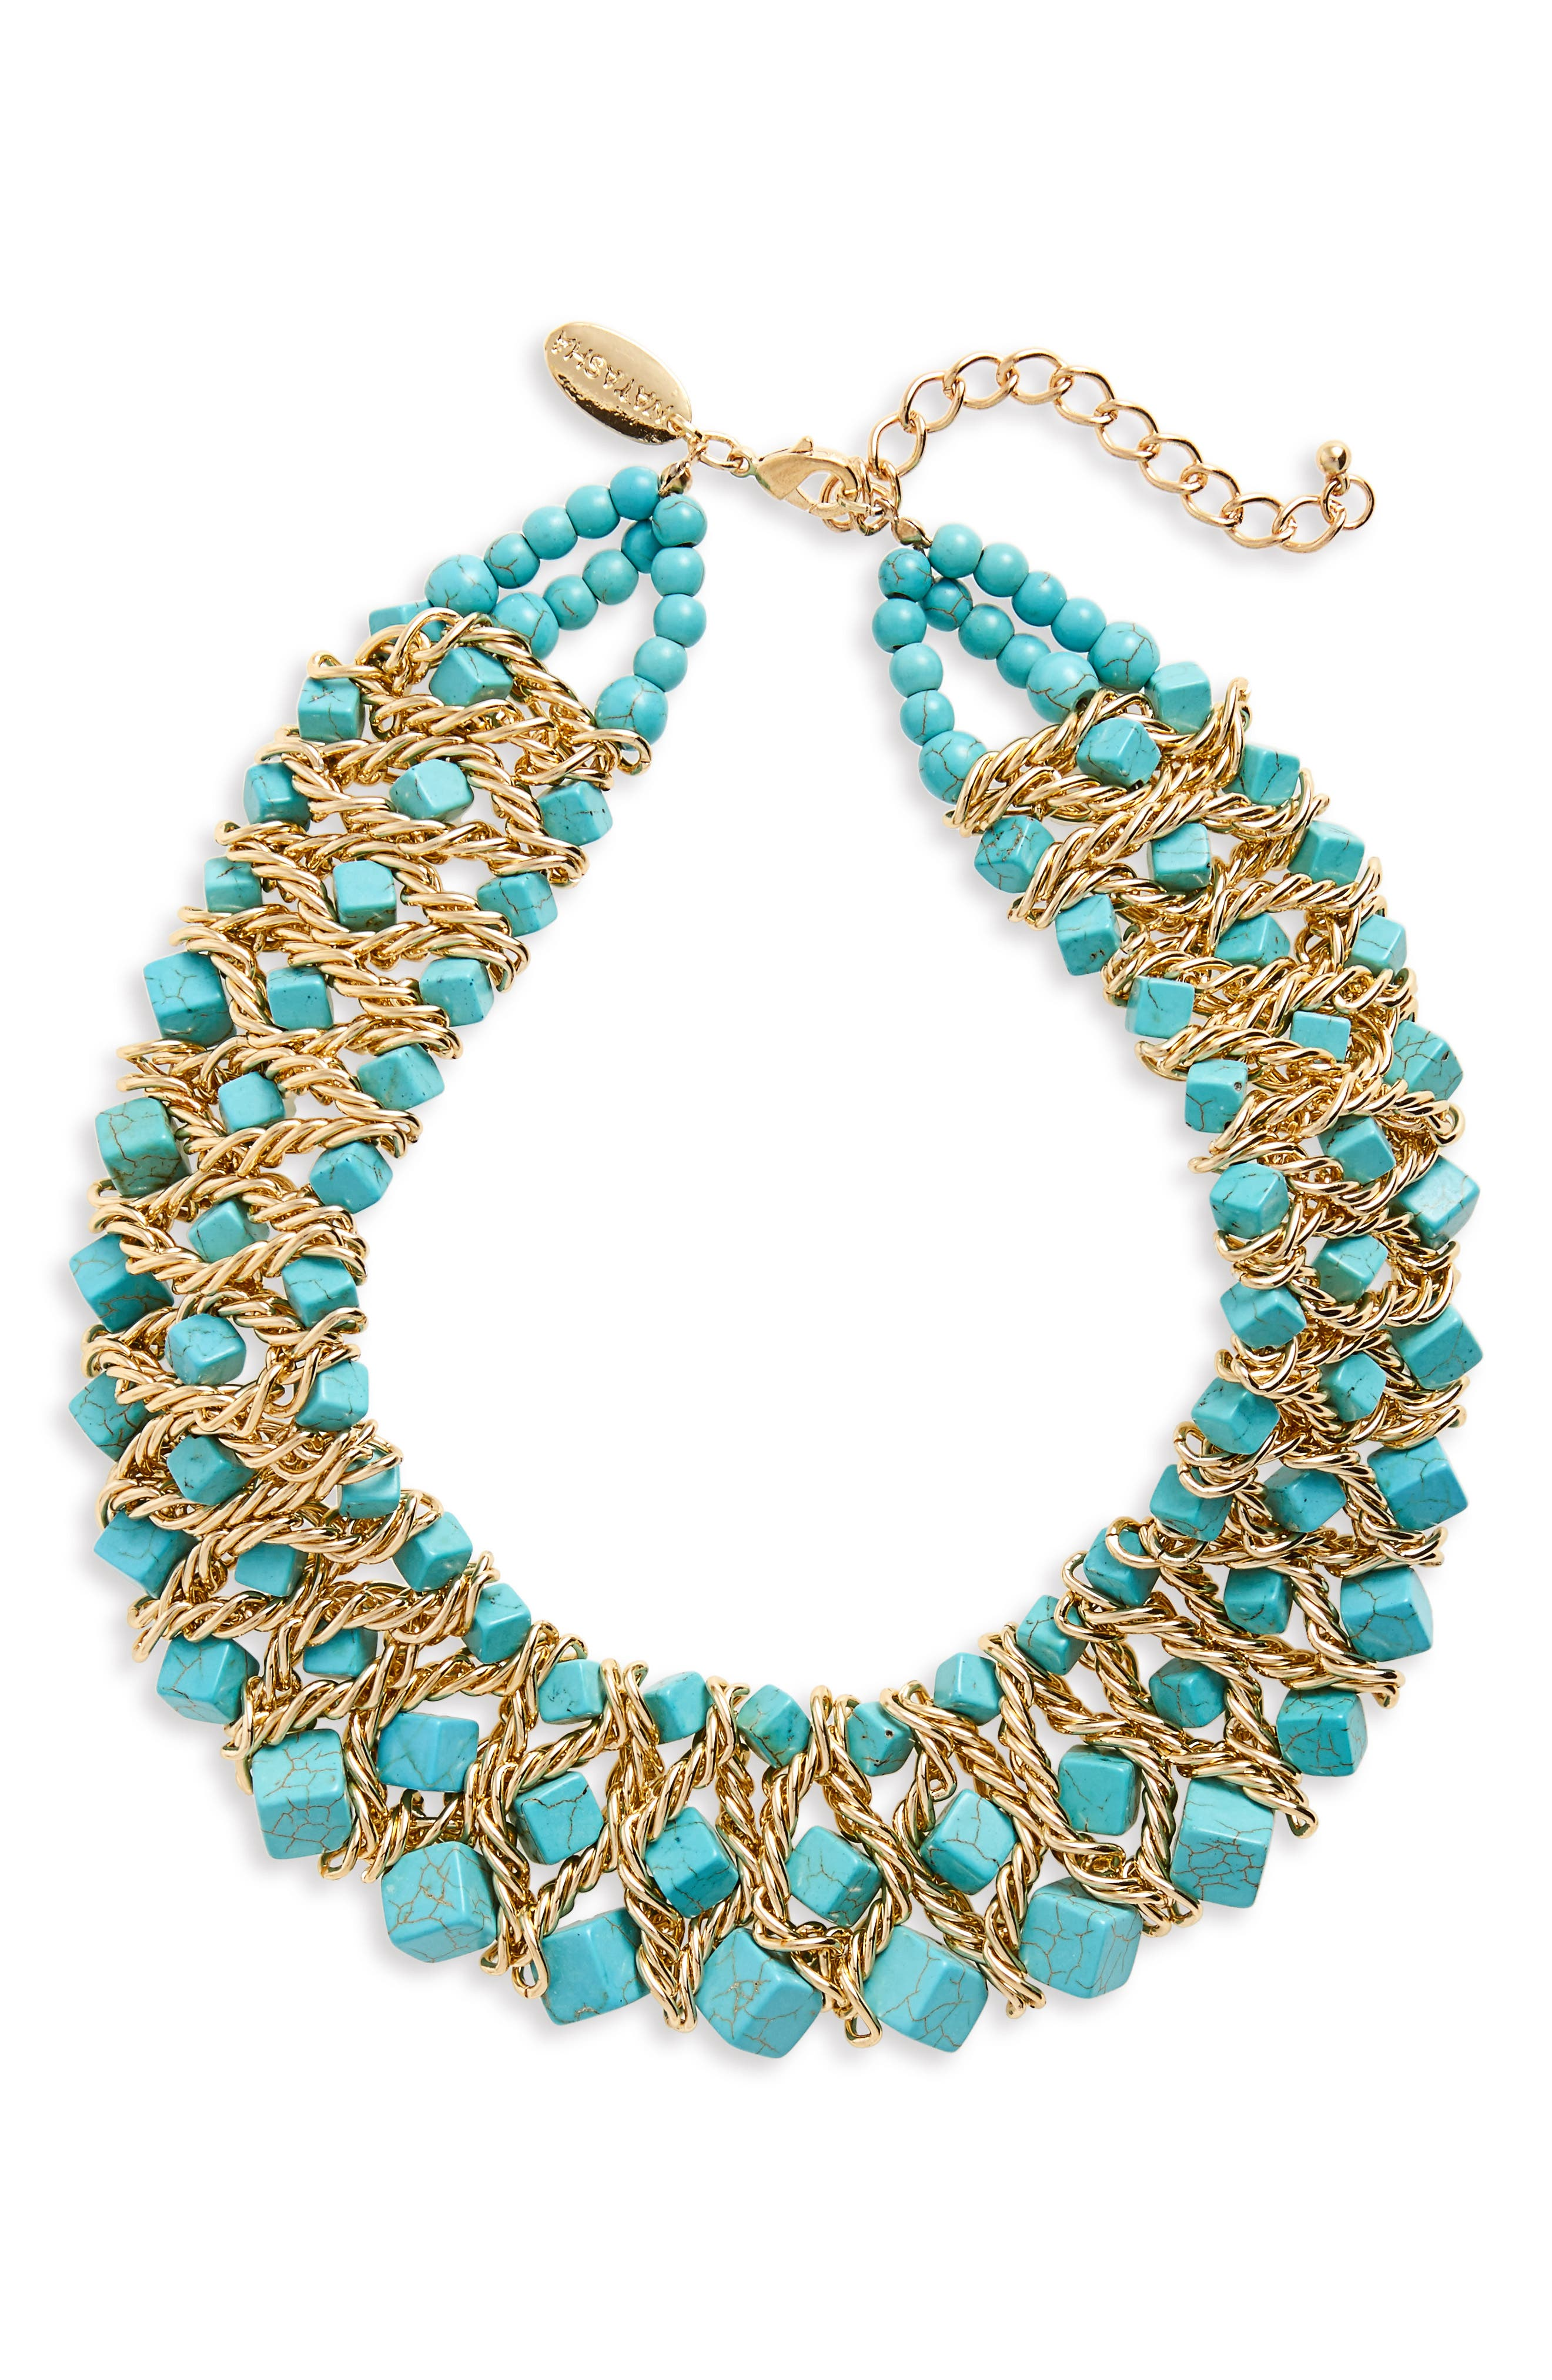 Chain & Stone Statement Necklace,                             Main thumbnail 1, color,                             Turquoise